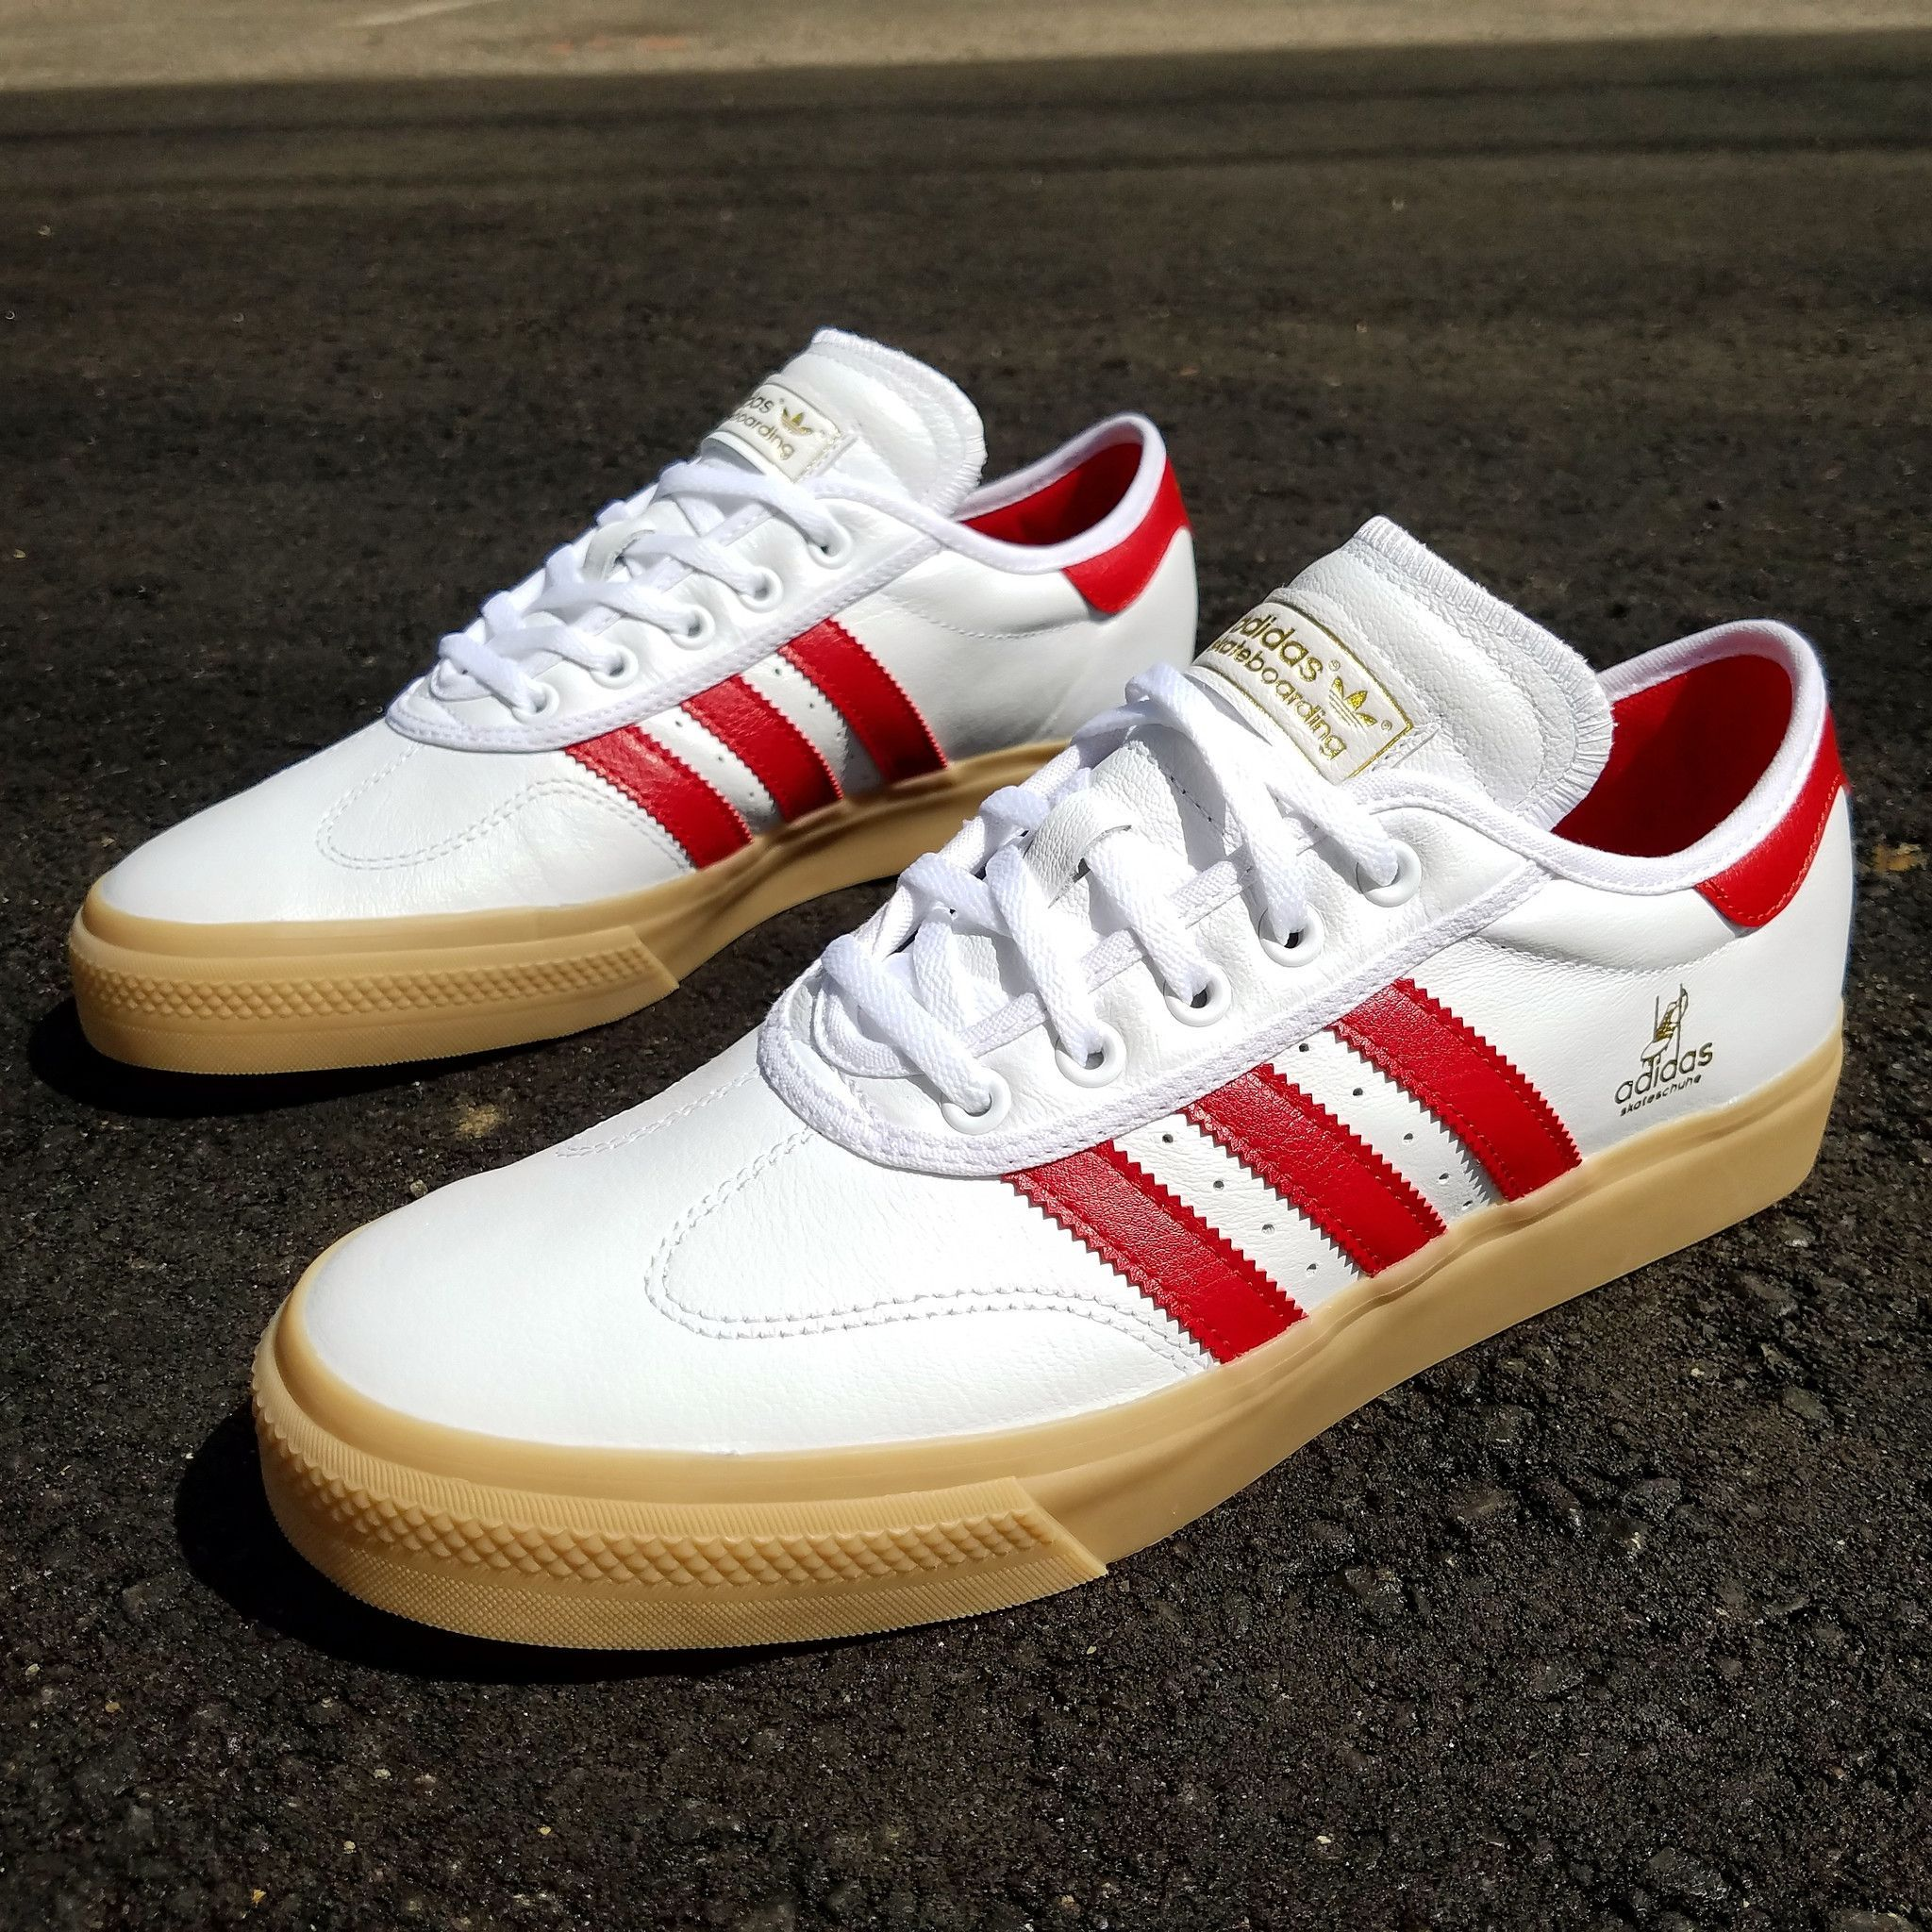 Universal Adiease ShoesProducts Soccer Adidas Adv hrdtsQ